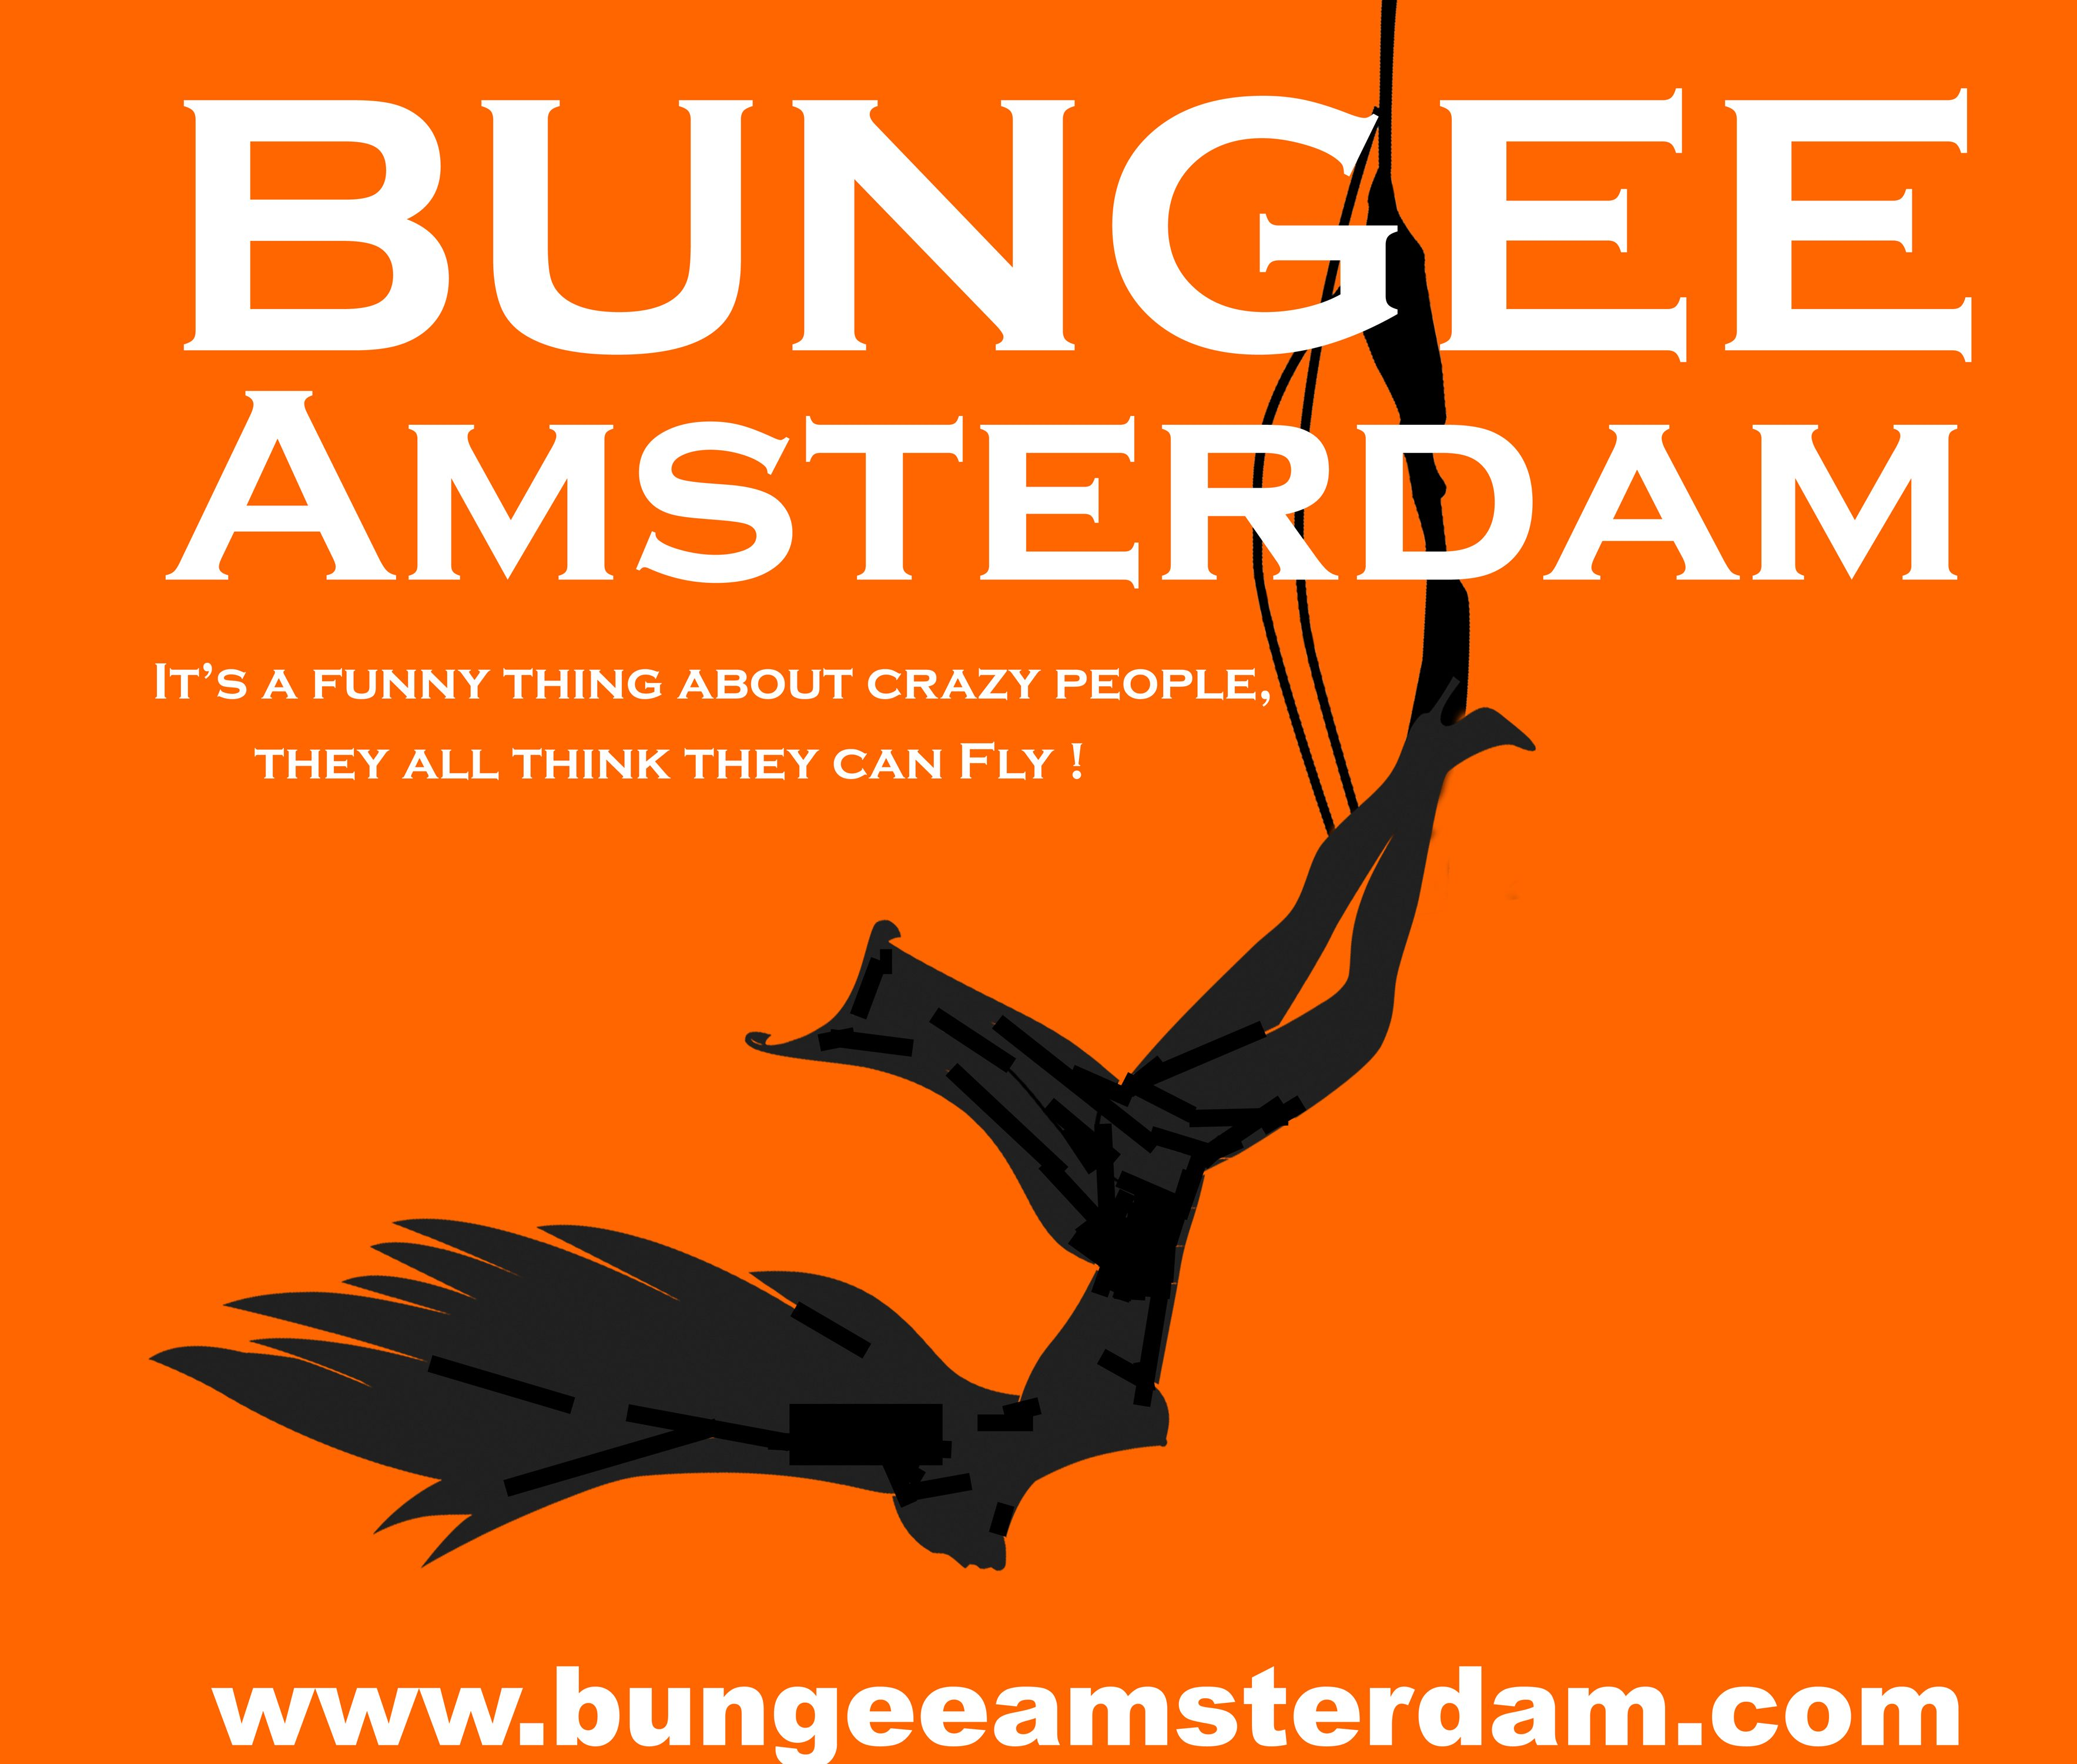 Bungee Amsterdam